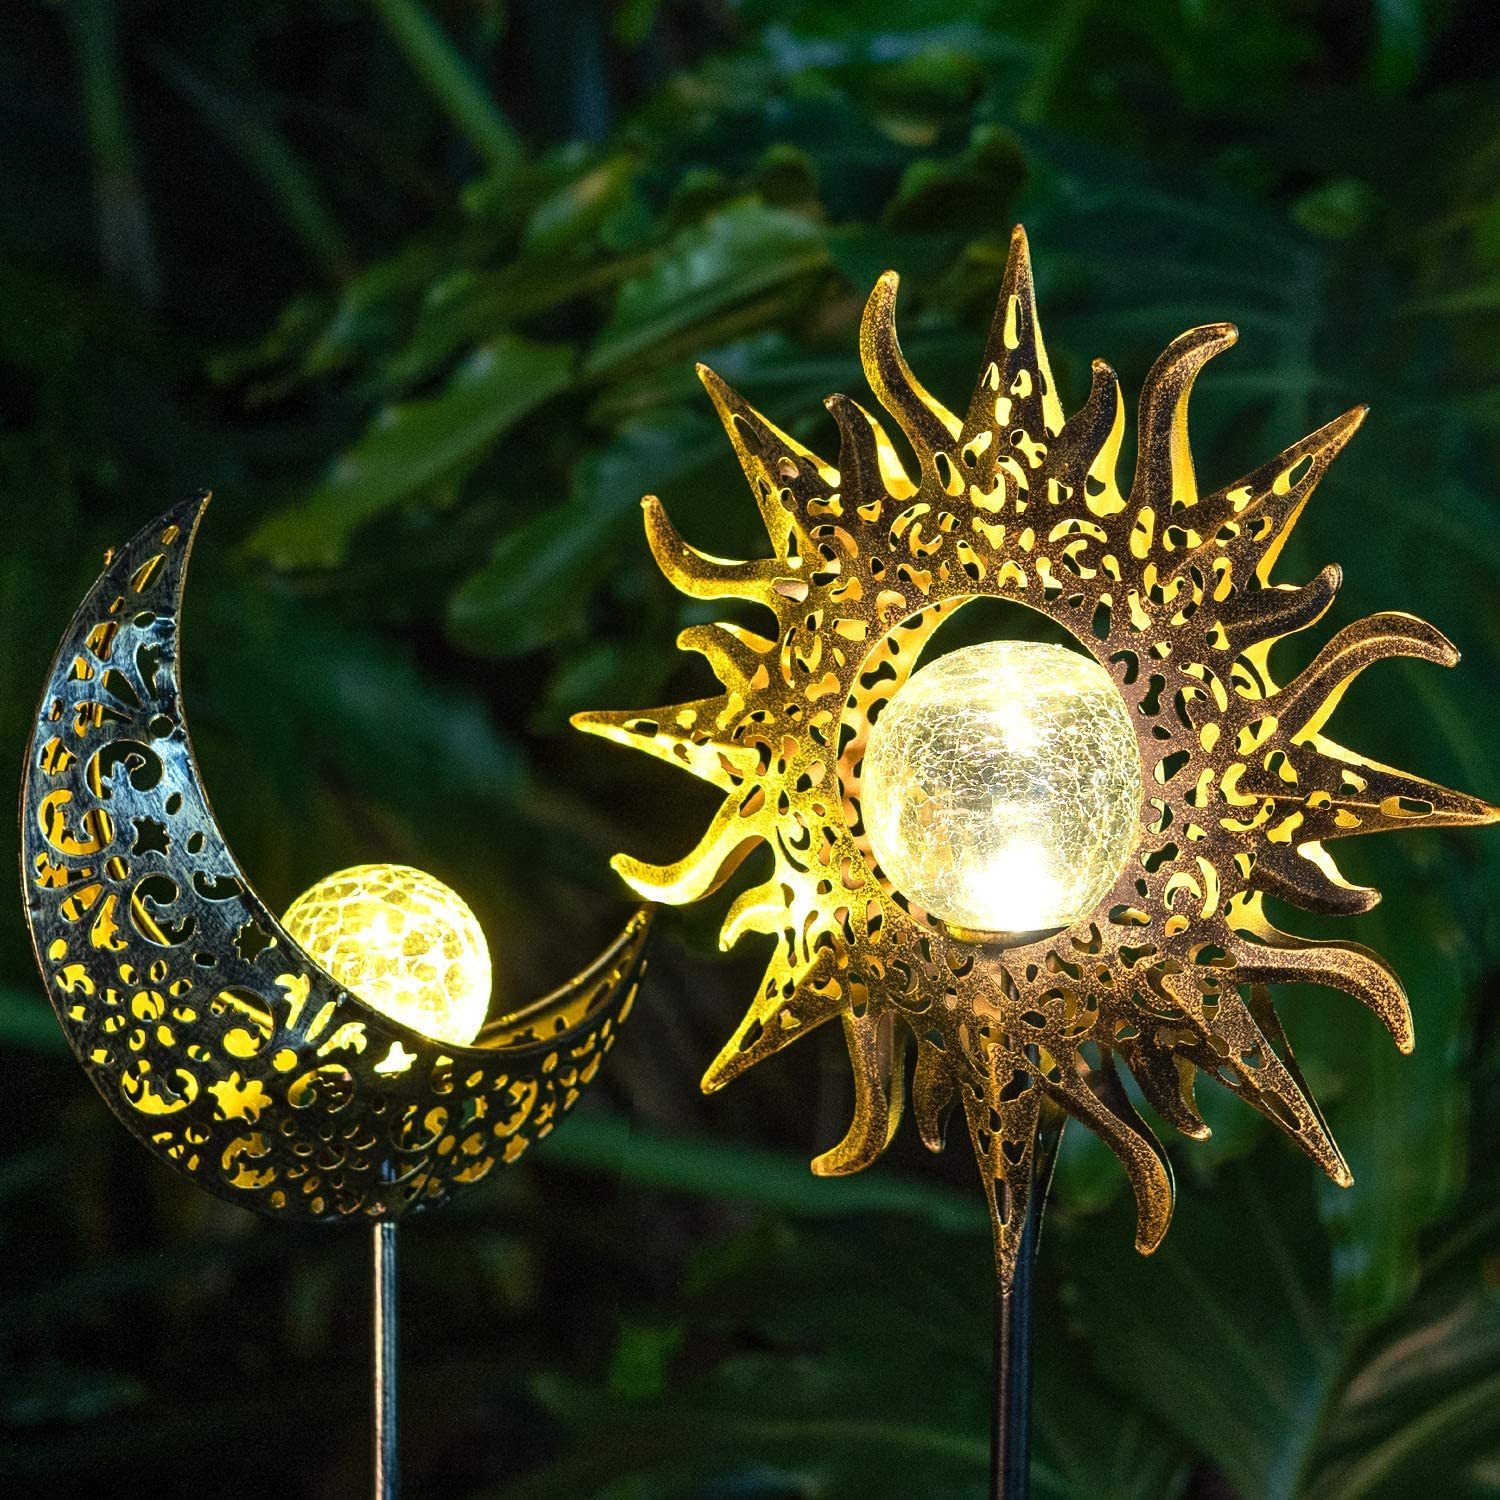 Solar Lights Outdoor Garden Decorative,Waterproof Metal Sun Moon Stakes,Garden Art Crackle Glass Globe Lights for Walkway,Yard,Lawn, Patio